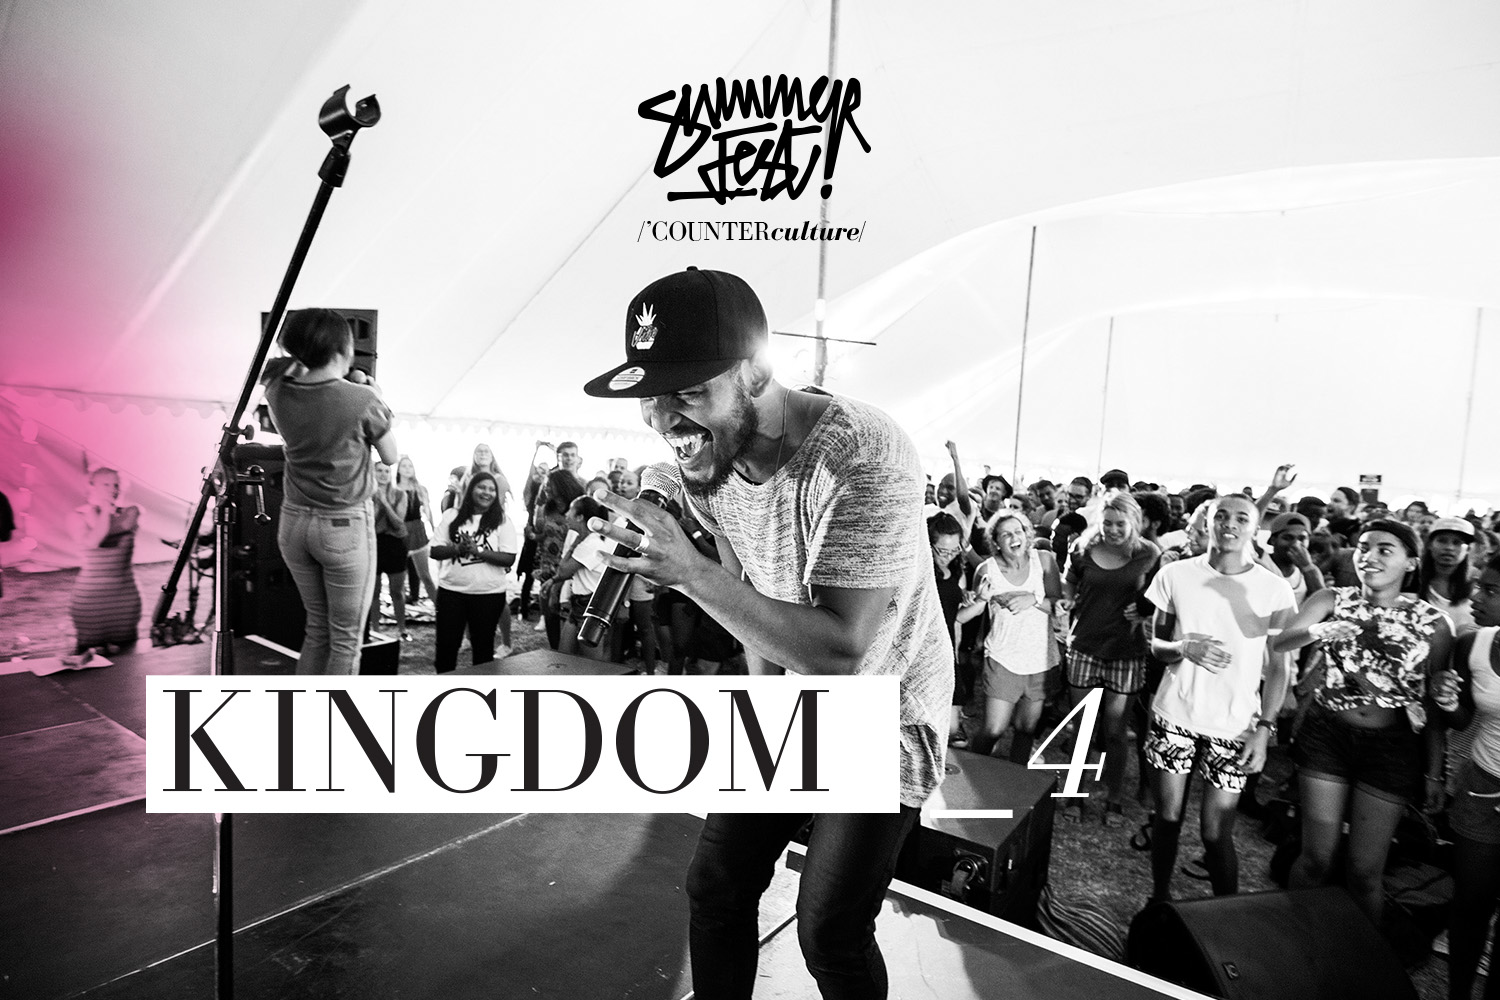 Summerfest: Kingdom - Day 26